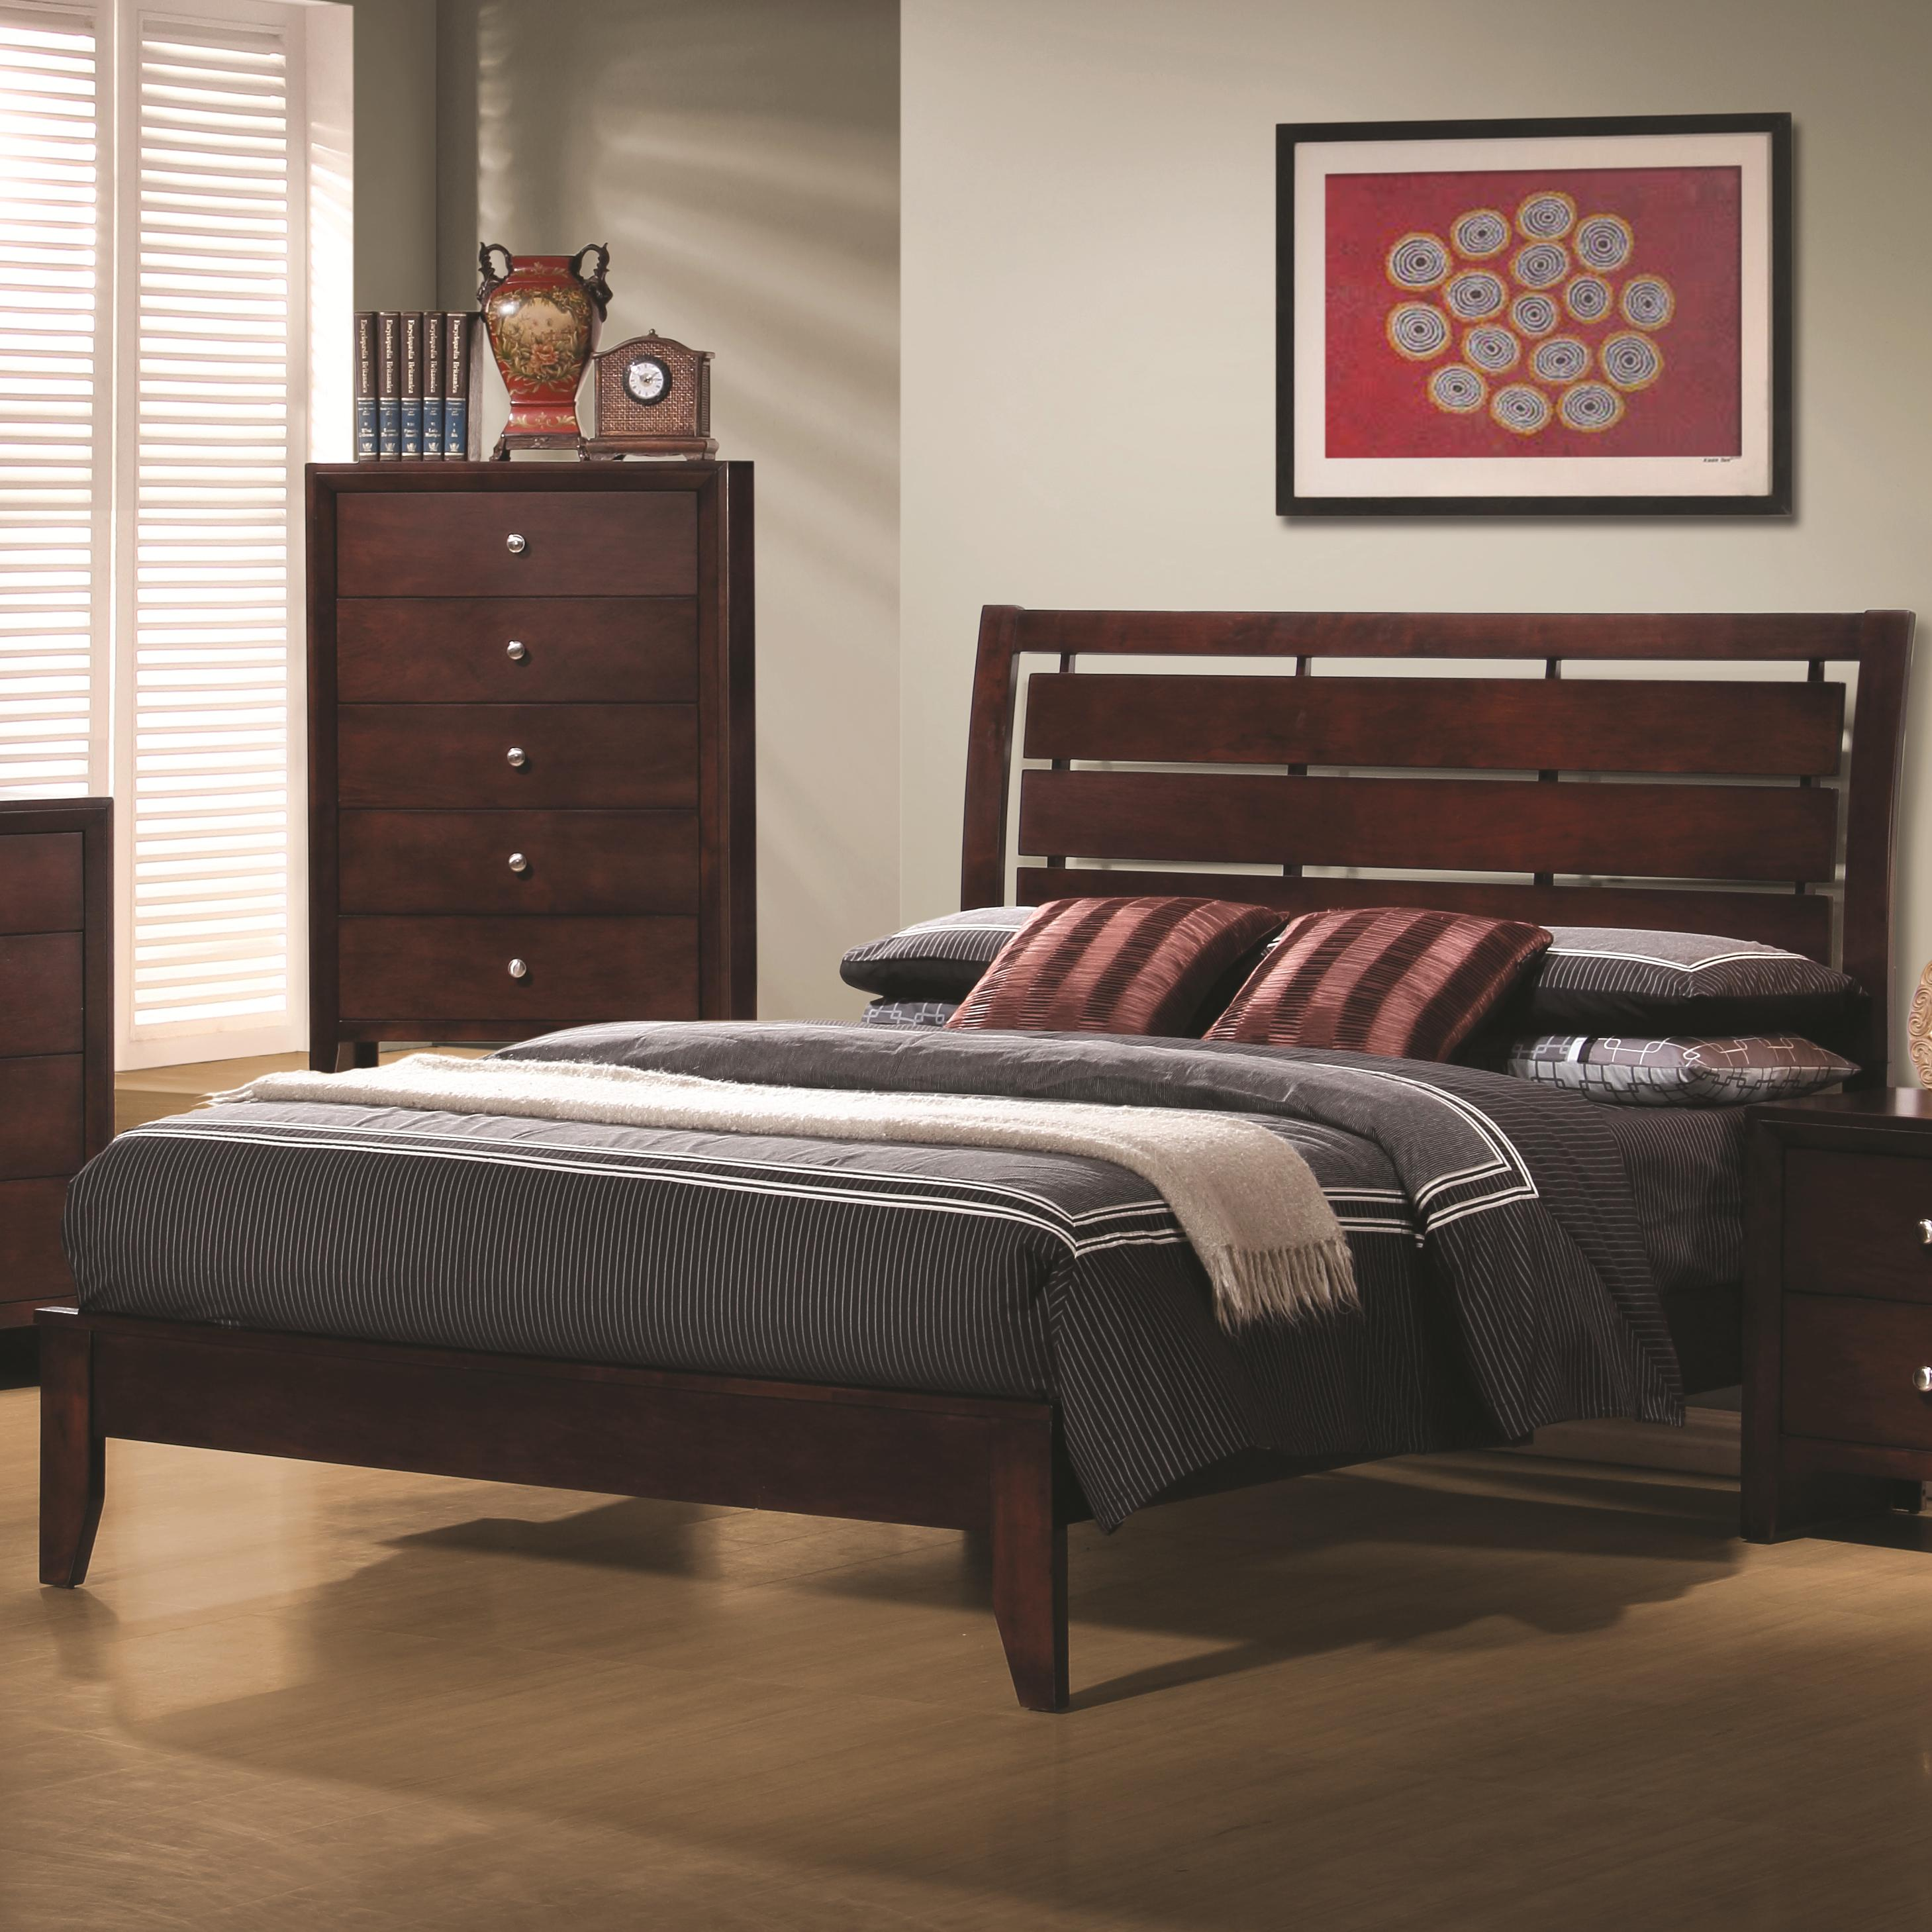 Coaster Furniture Serenity Twin Size Bed The Classy Home